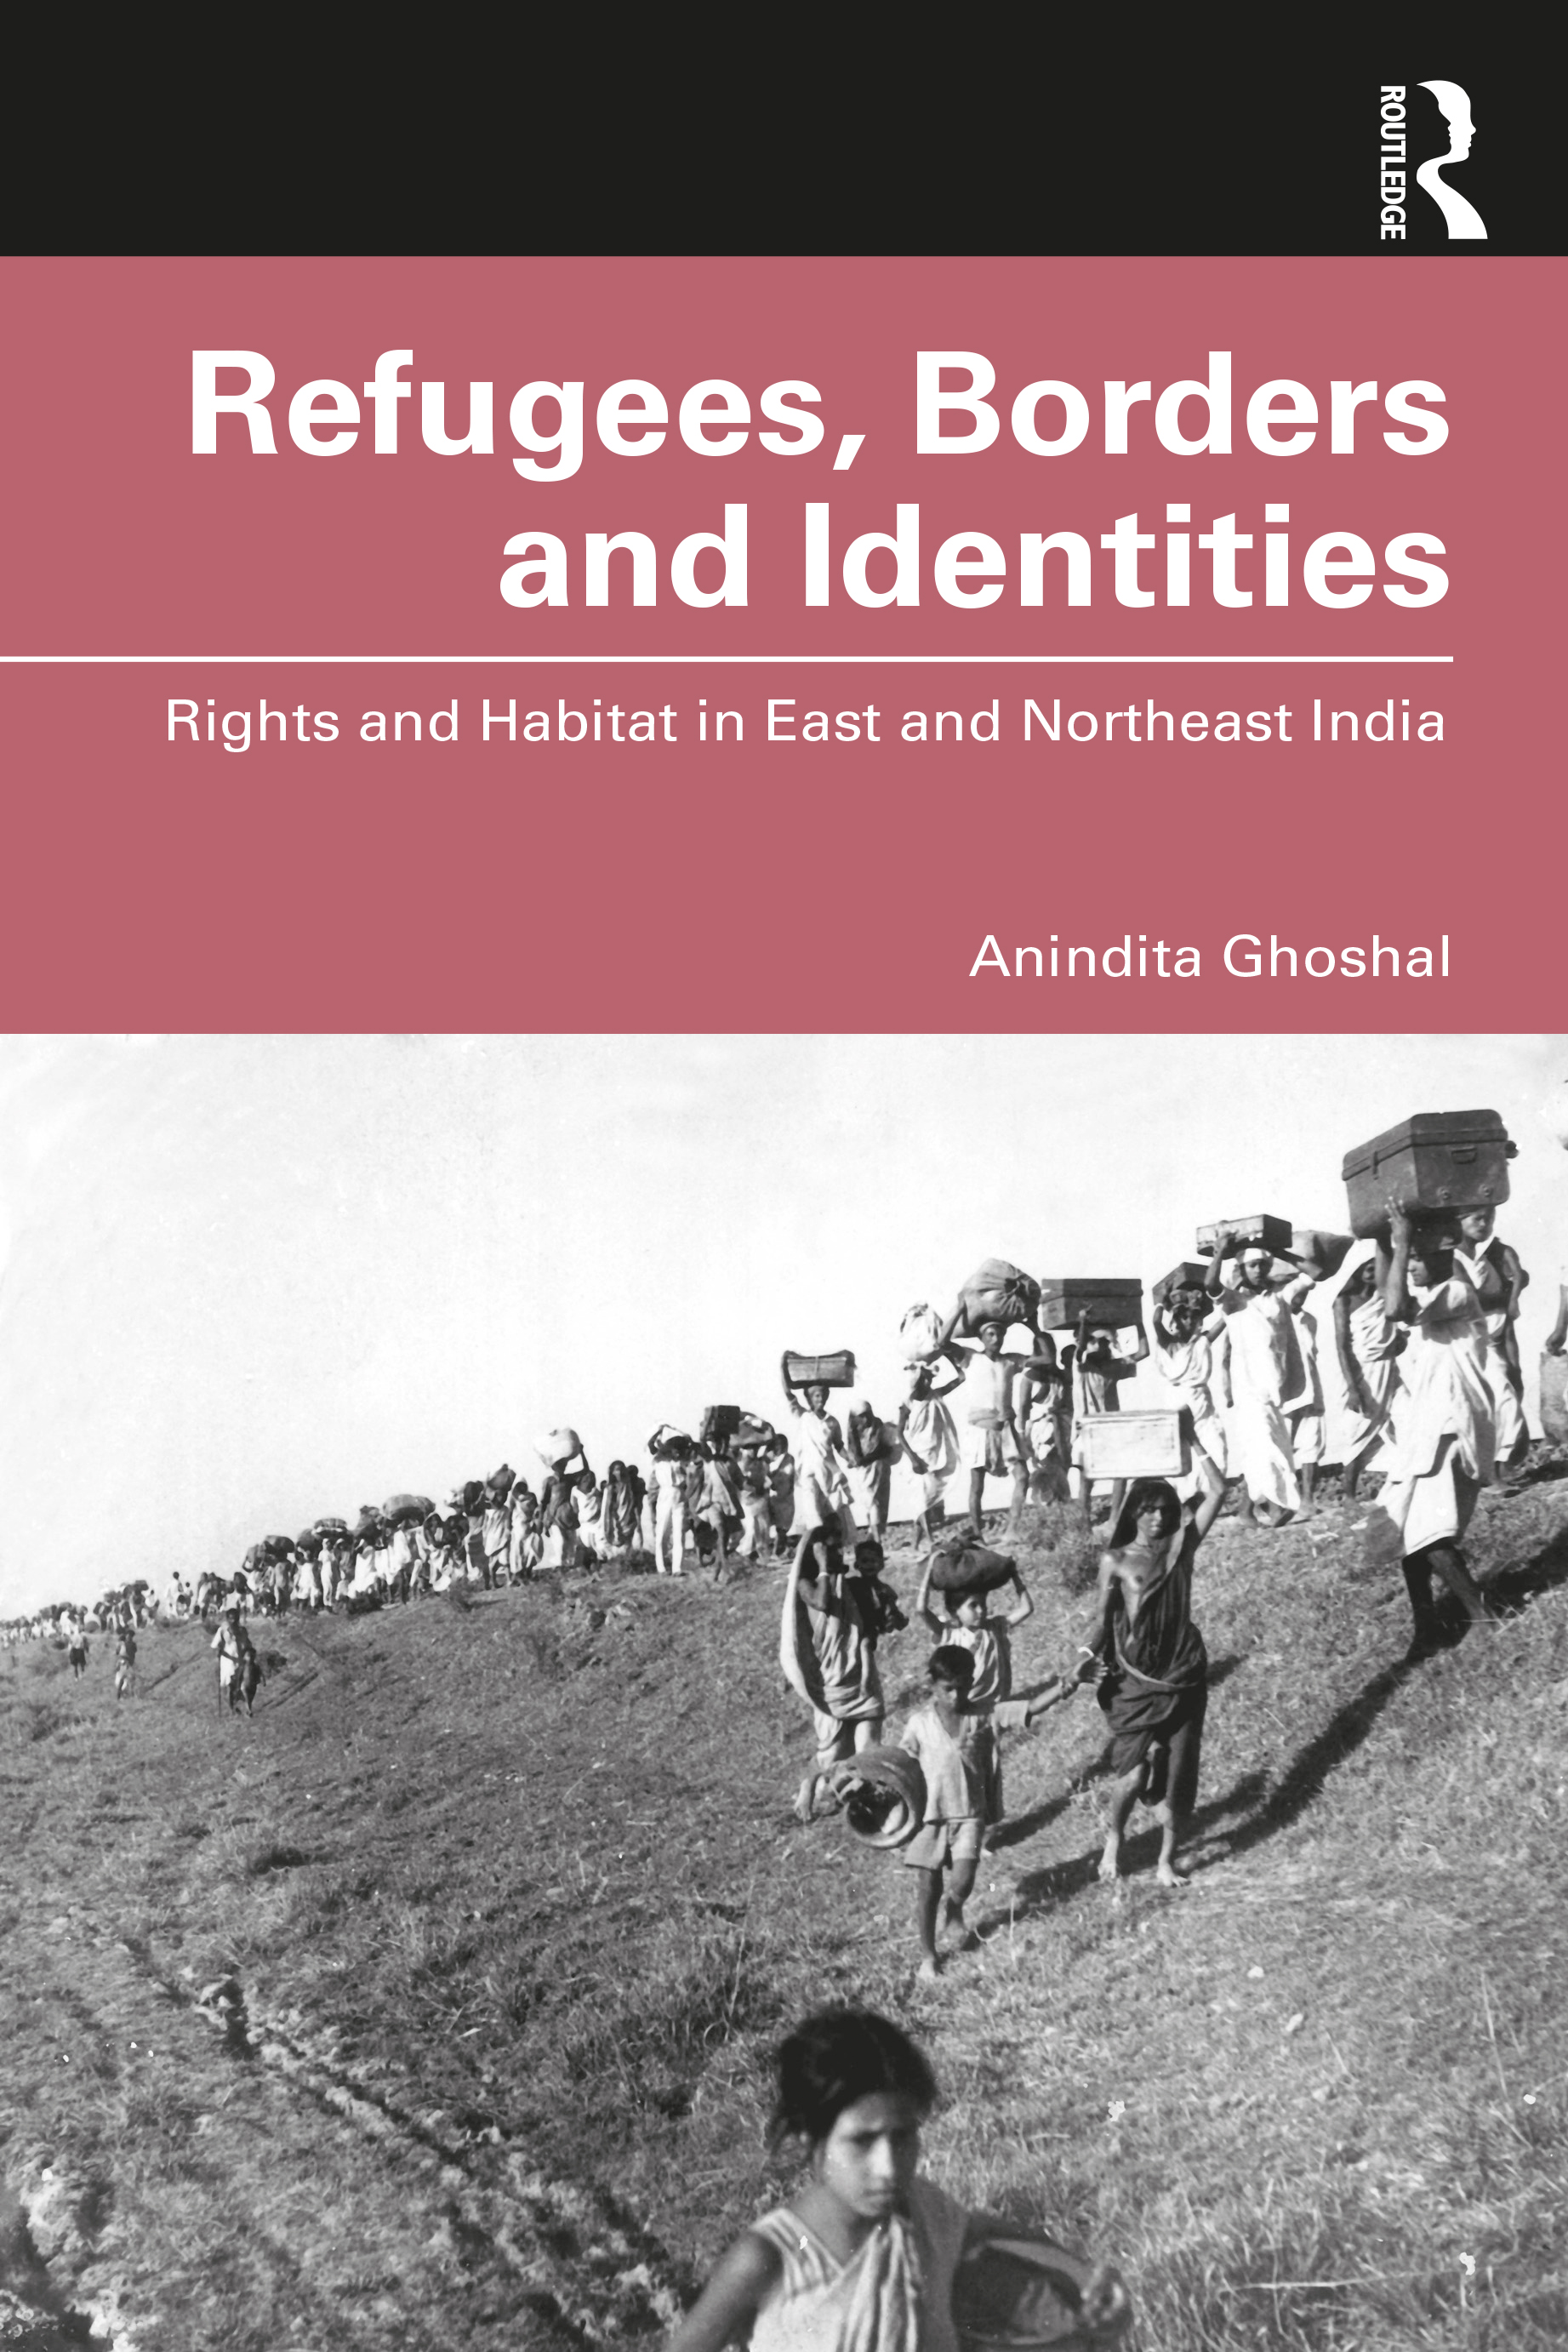 Refugees, Borders and Identities: Rights and Habitat in East and Northeast India book cover